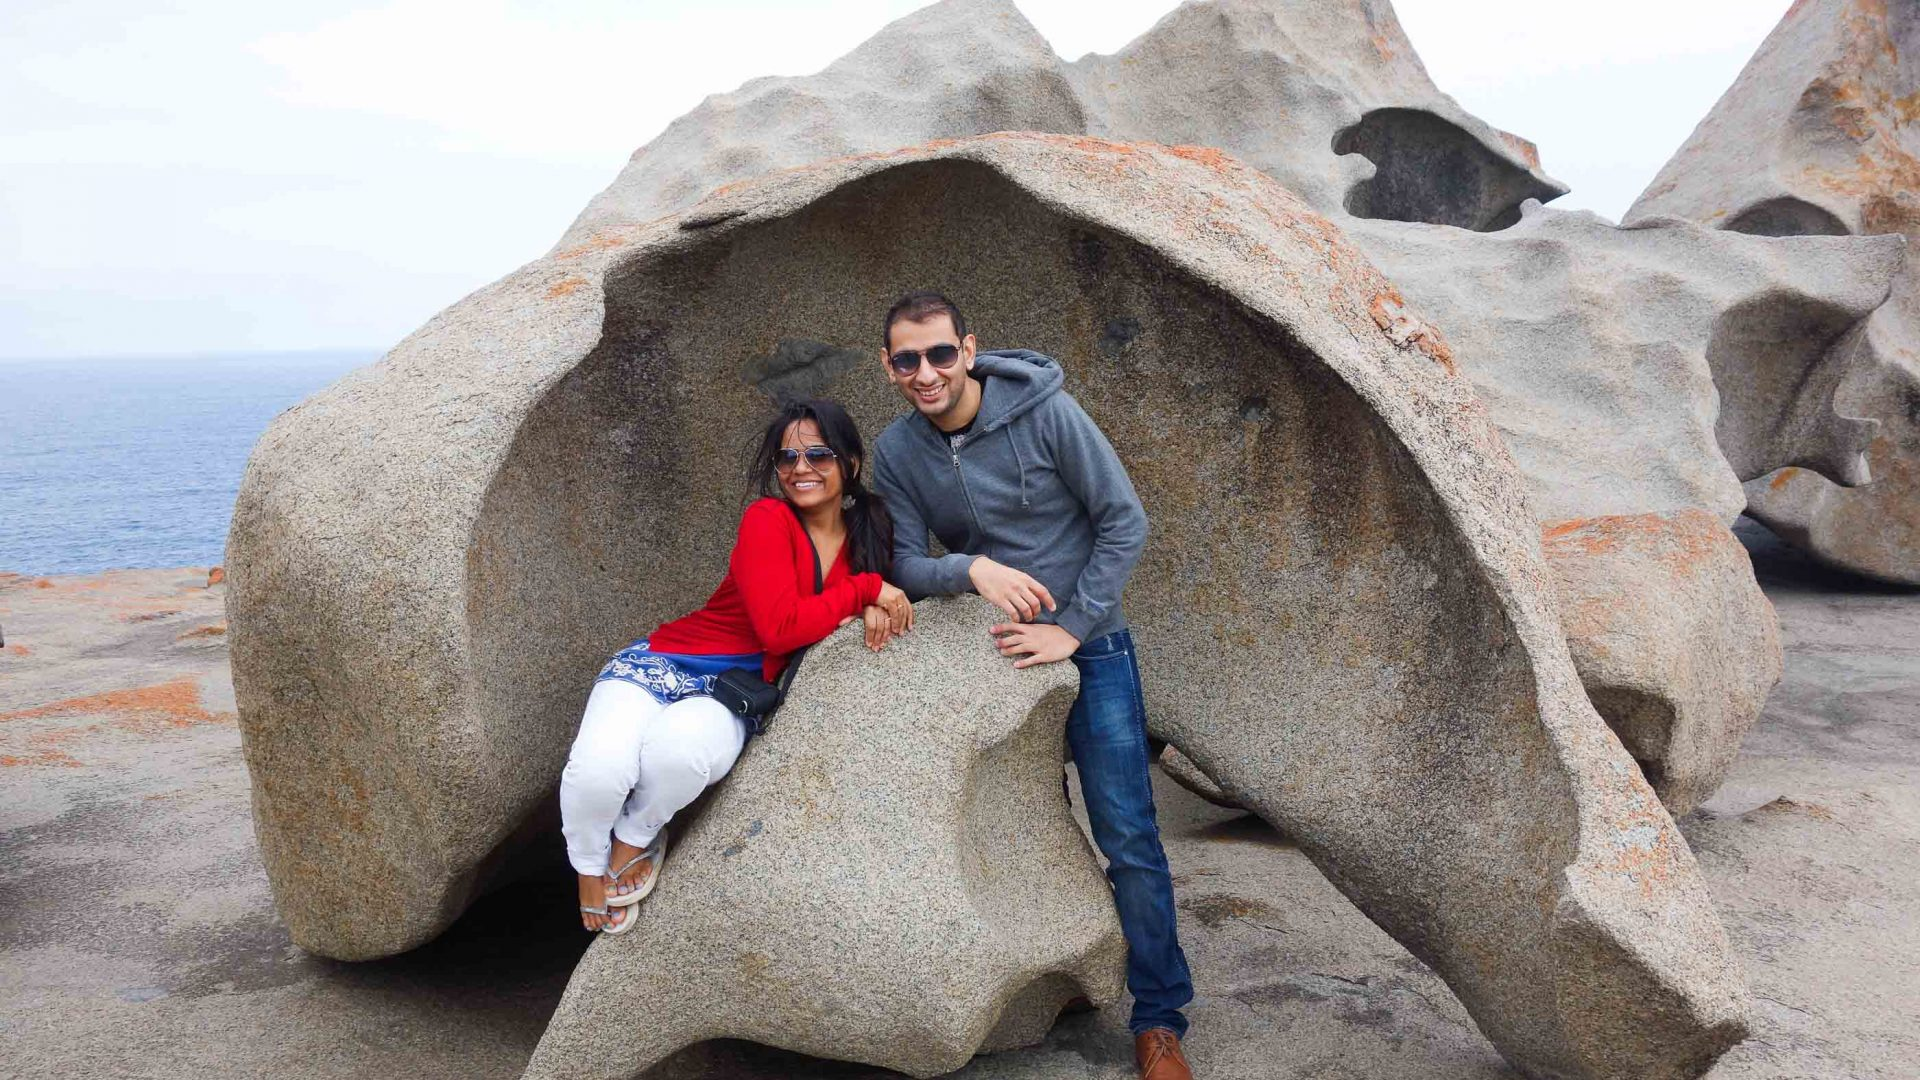 A couple pose in front of a big rock.